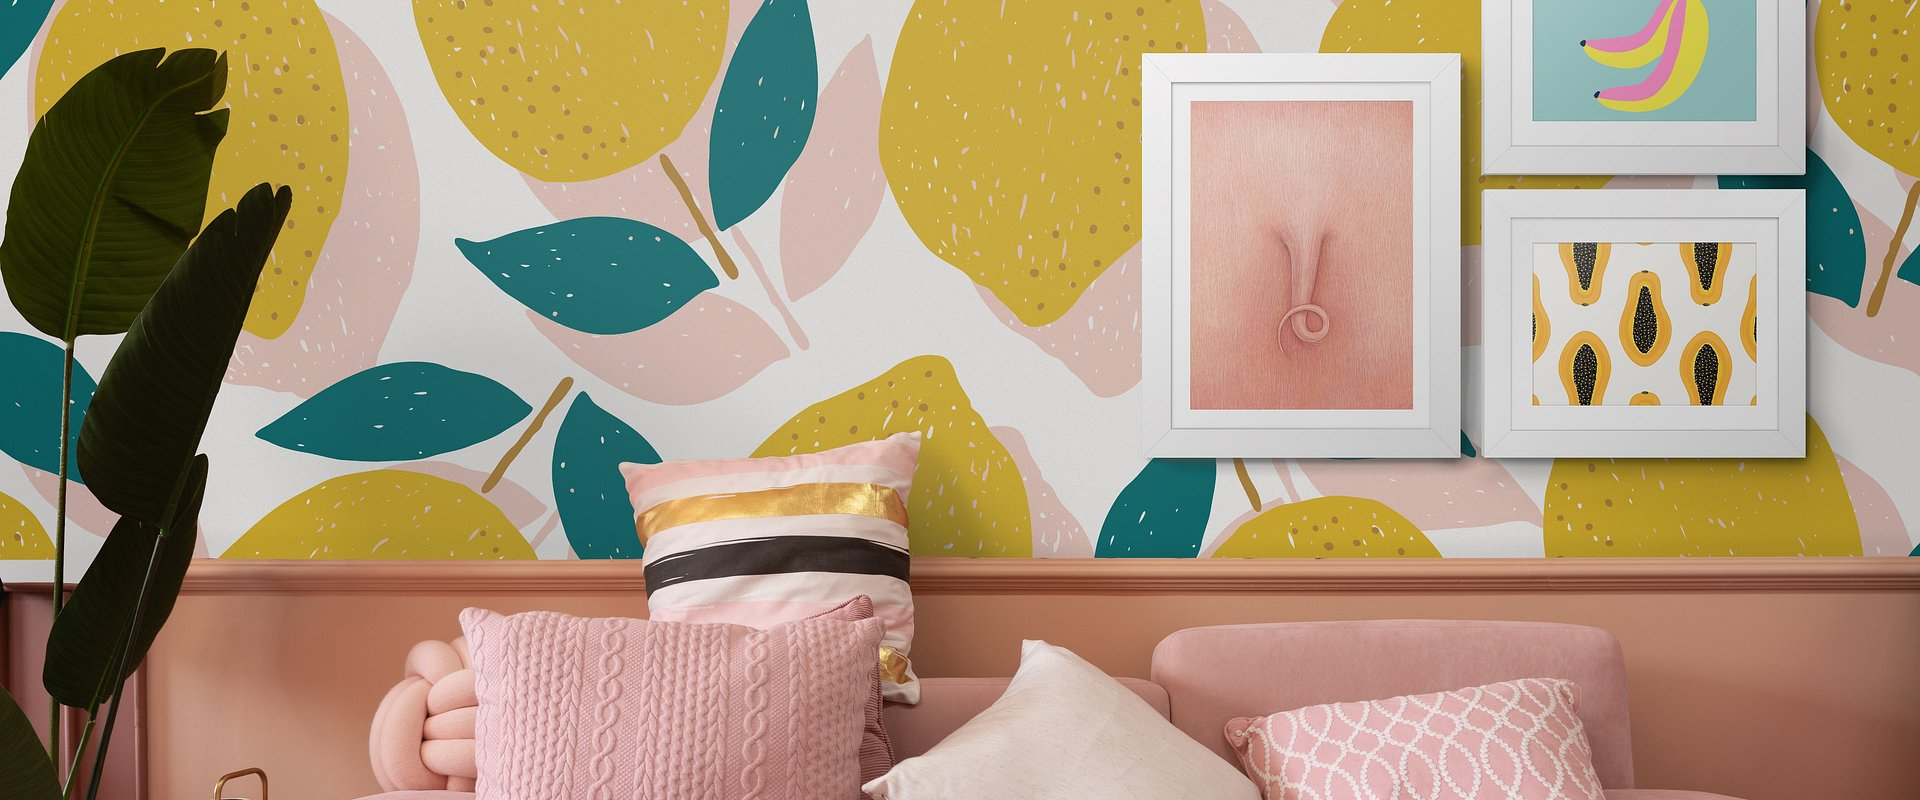 Spring color therapy: rebel yellow in the interior